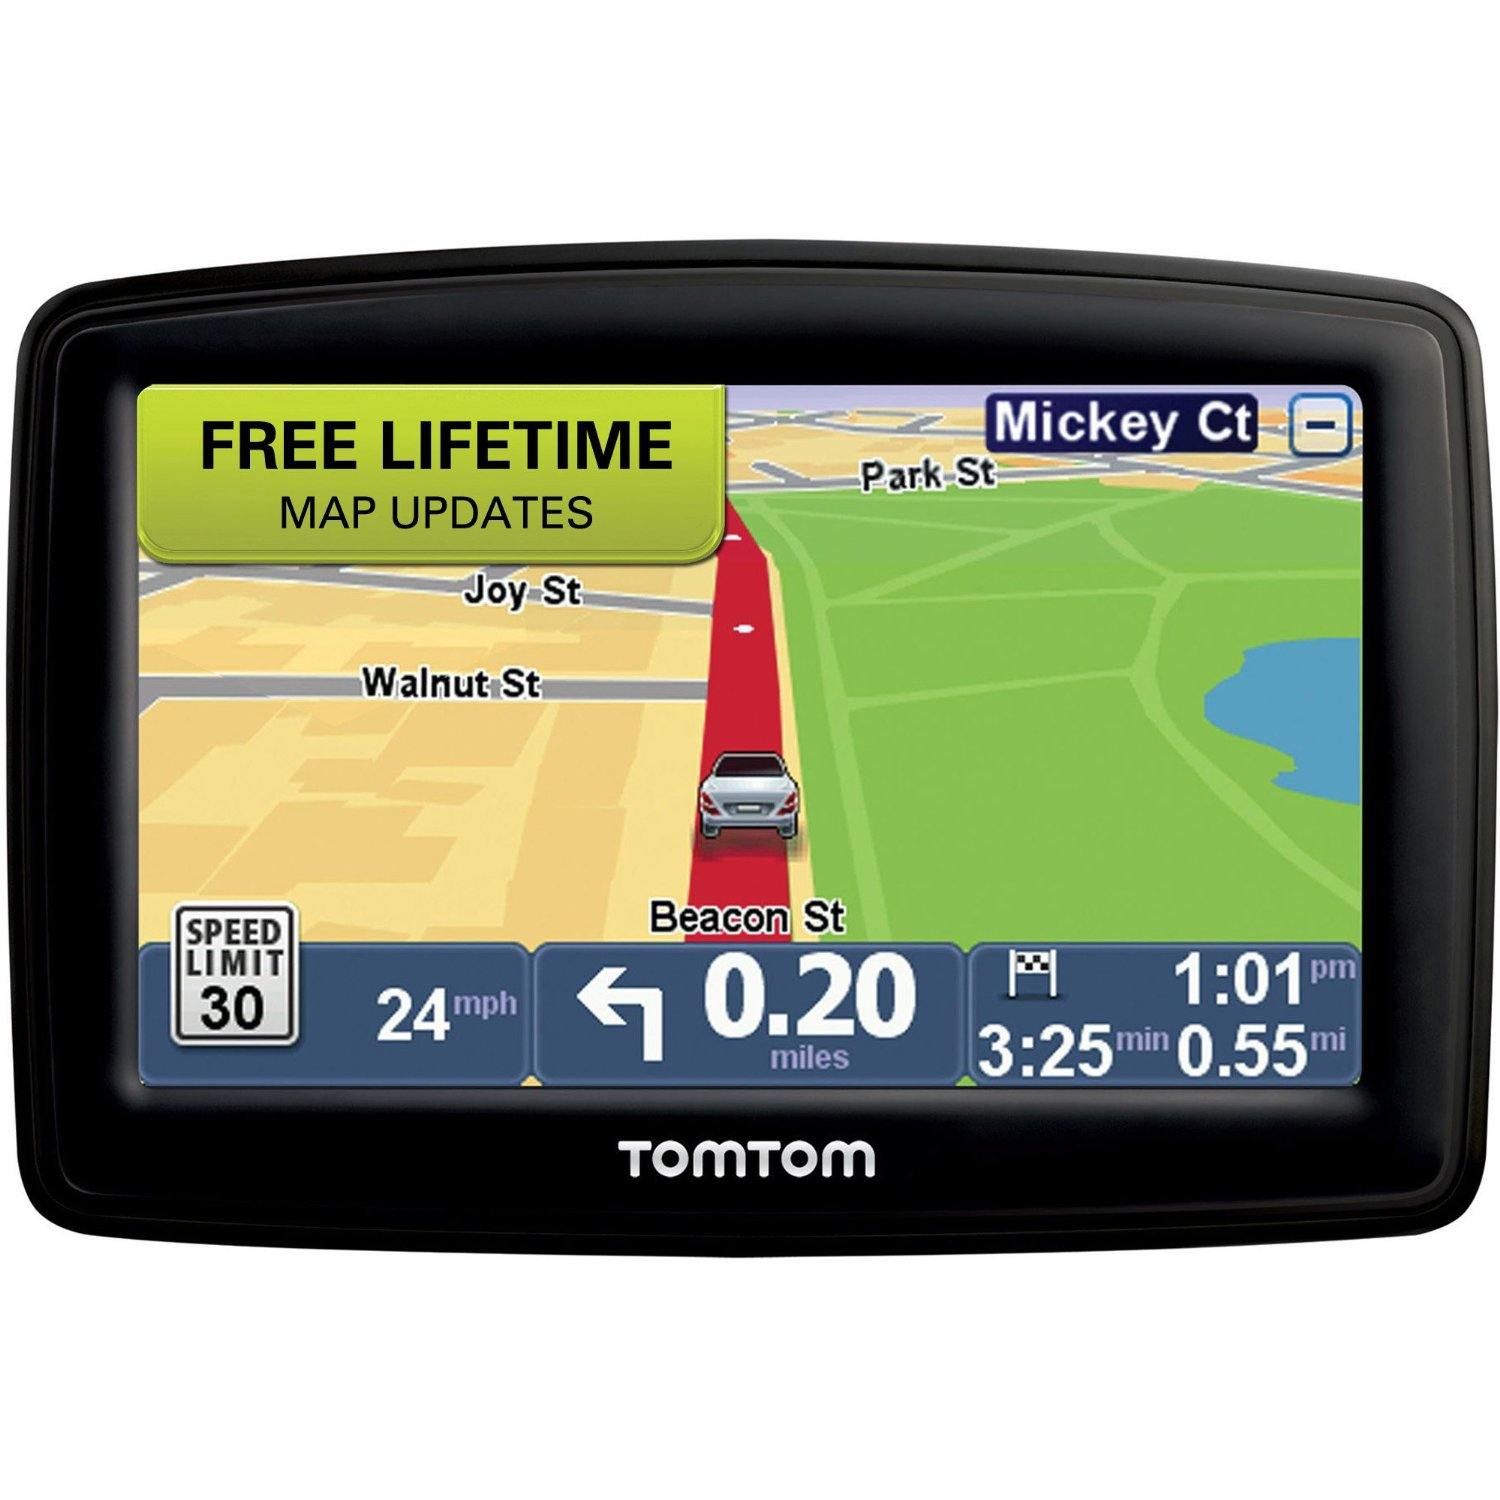 Updating tomtom gps free